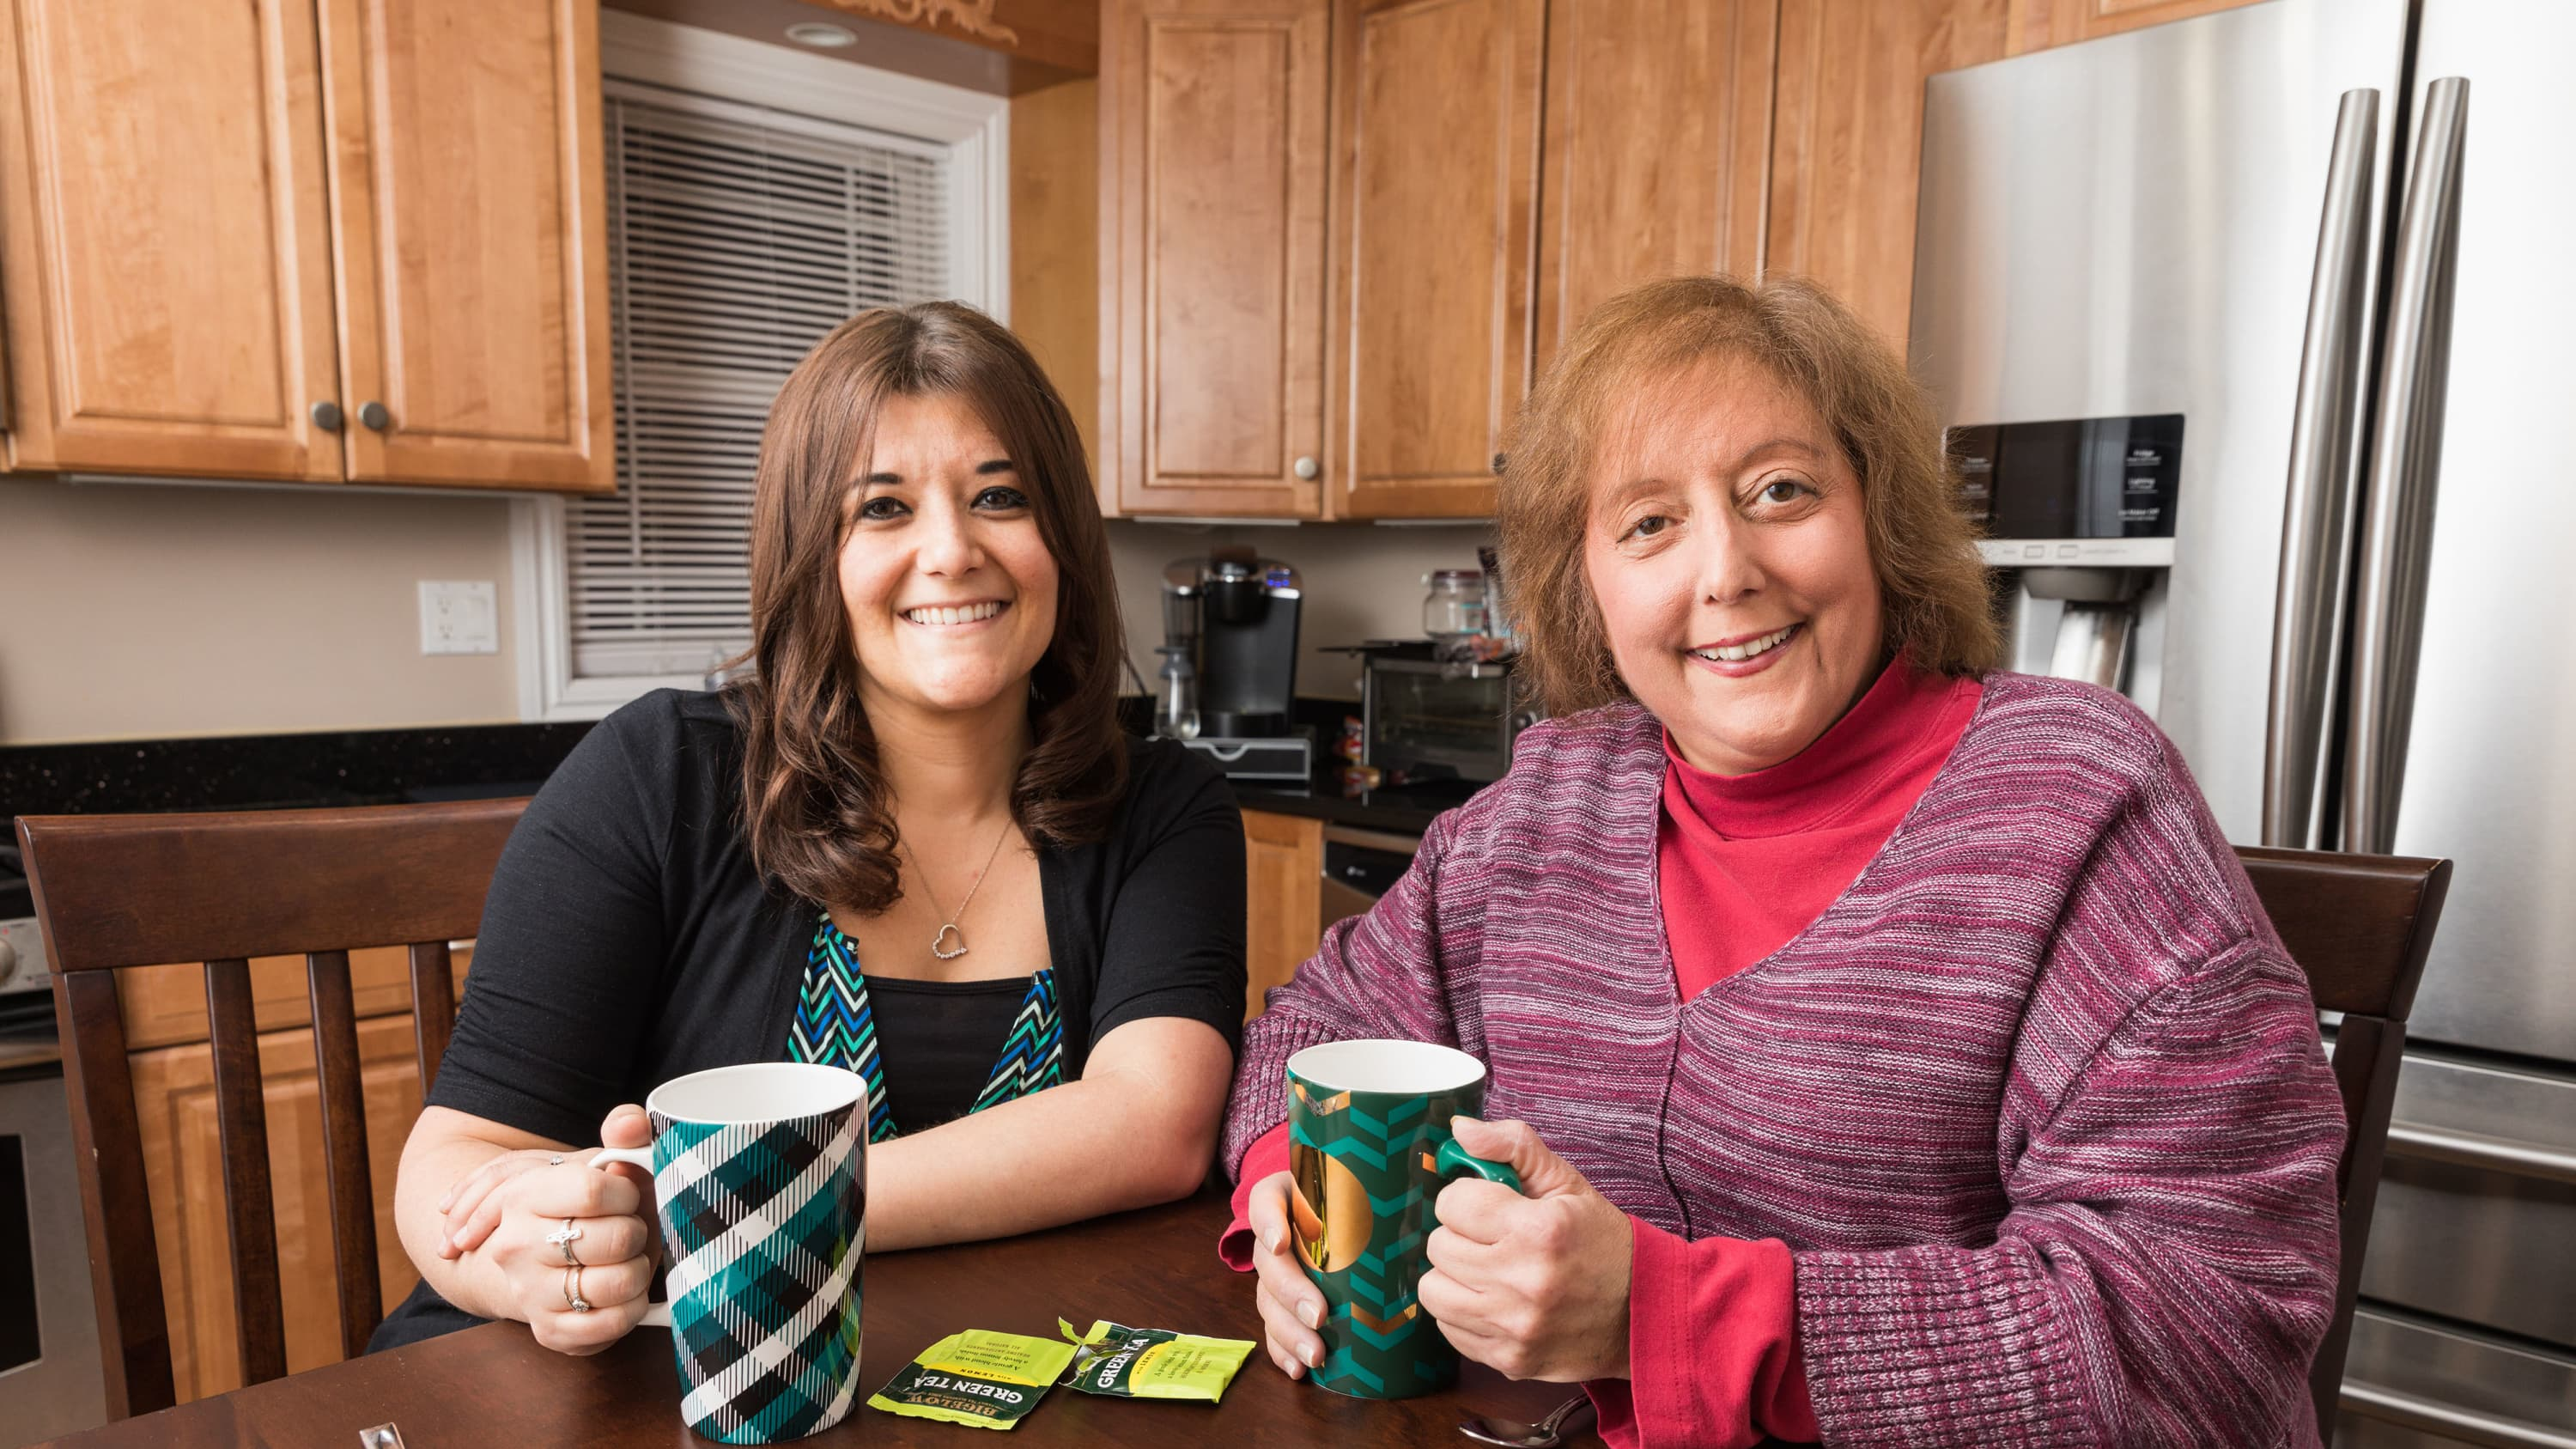 Annamarie Williams (left) and her mom, Sally Proto, pose together in a kitchen.